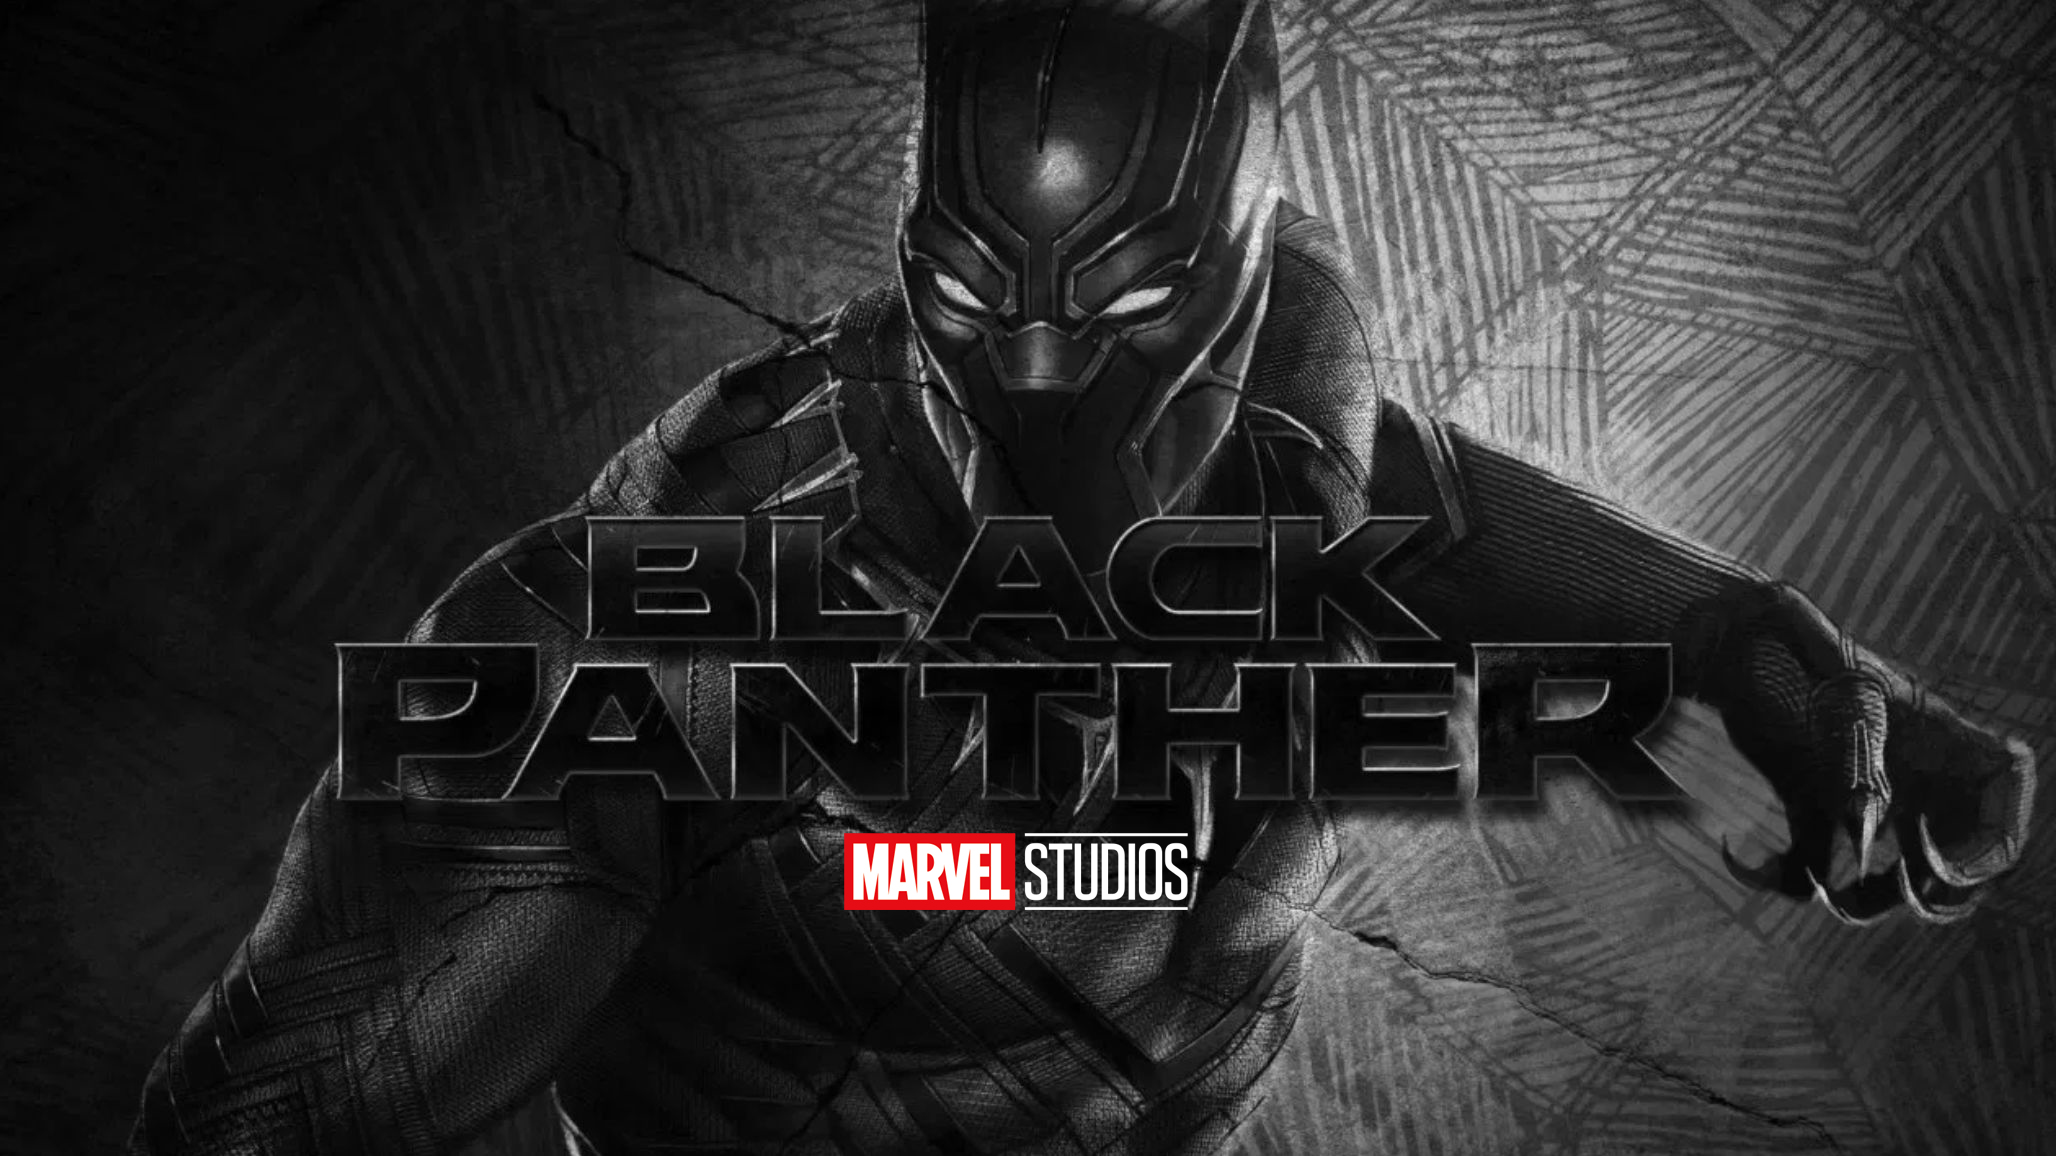 Must see Wallpaper Marvel Dark - Black_Panther_Wallpaper_with_Marvel_Studios_Logo  Picture_419950.jpg